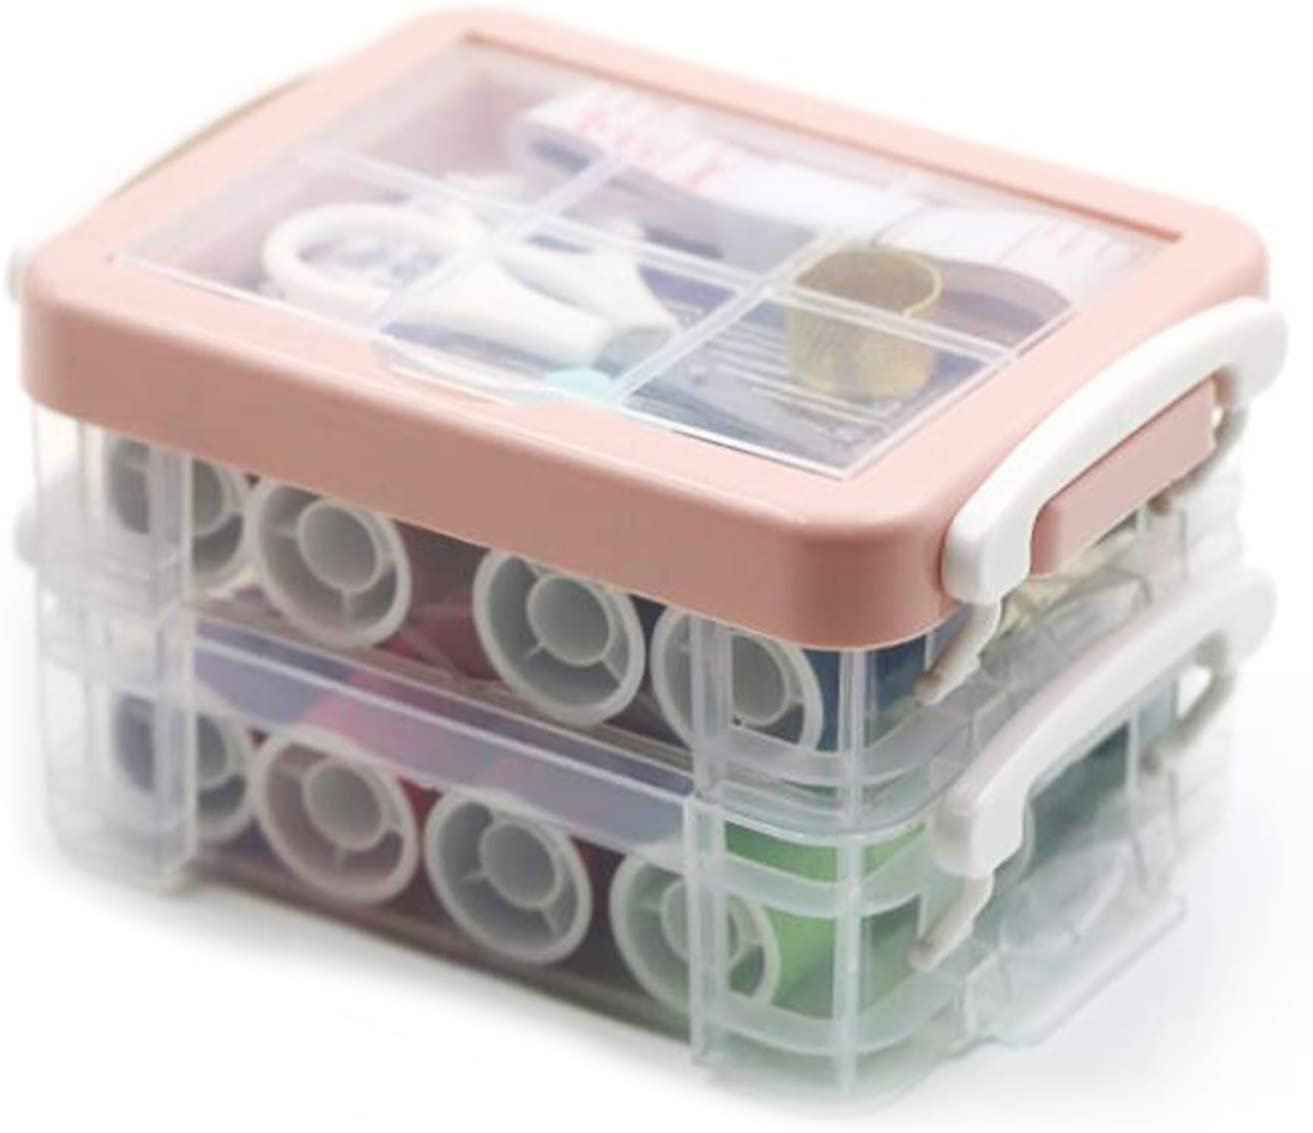 30PCS Sewing Kit, Sewing Supplies with Sewing Accessories Suitable for Traveller, Adults, Kids, Beginner, DIY and Home